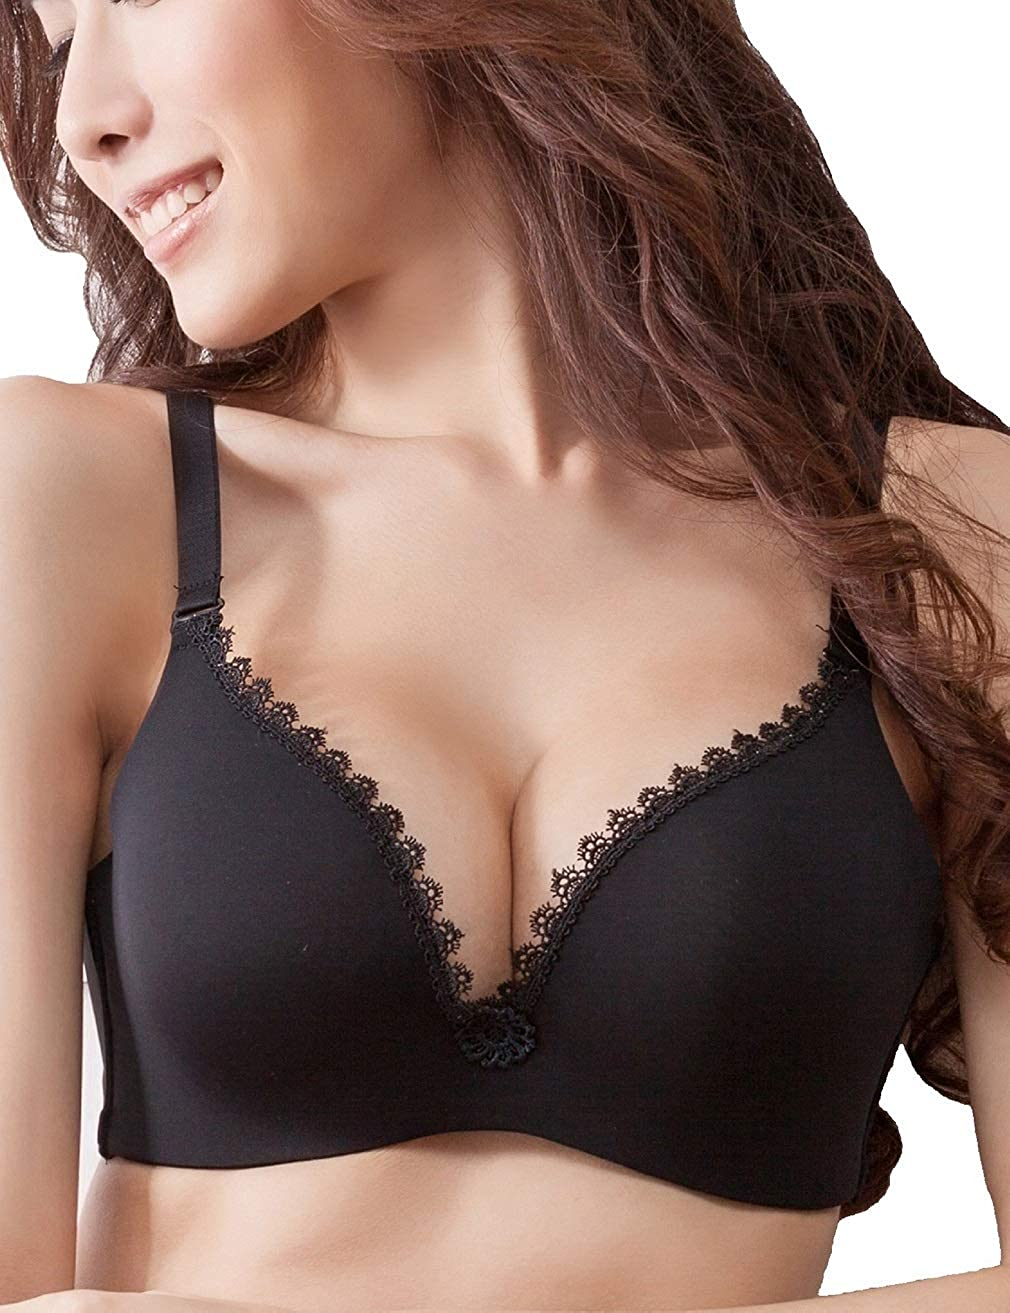 Nasse Women s Sexy Lace Wireless Push Up Bra Seamless Smooth Soft Memory  Padded T-Shirt Bras at Amazon Women s Clothing store  ab62521ae